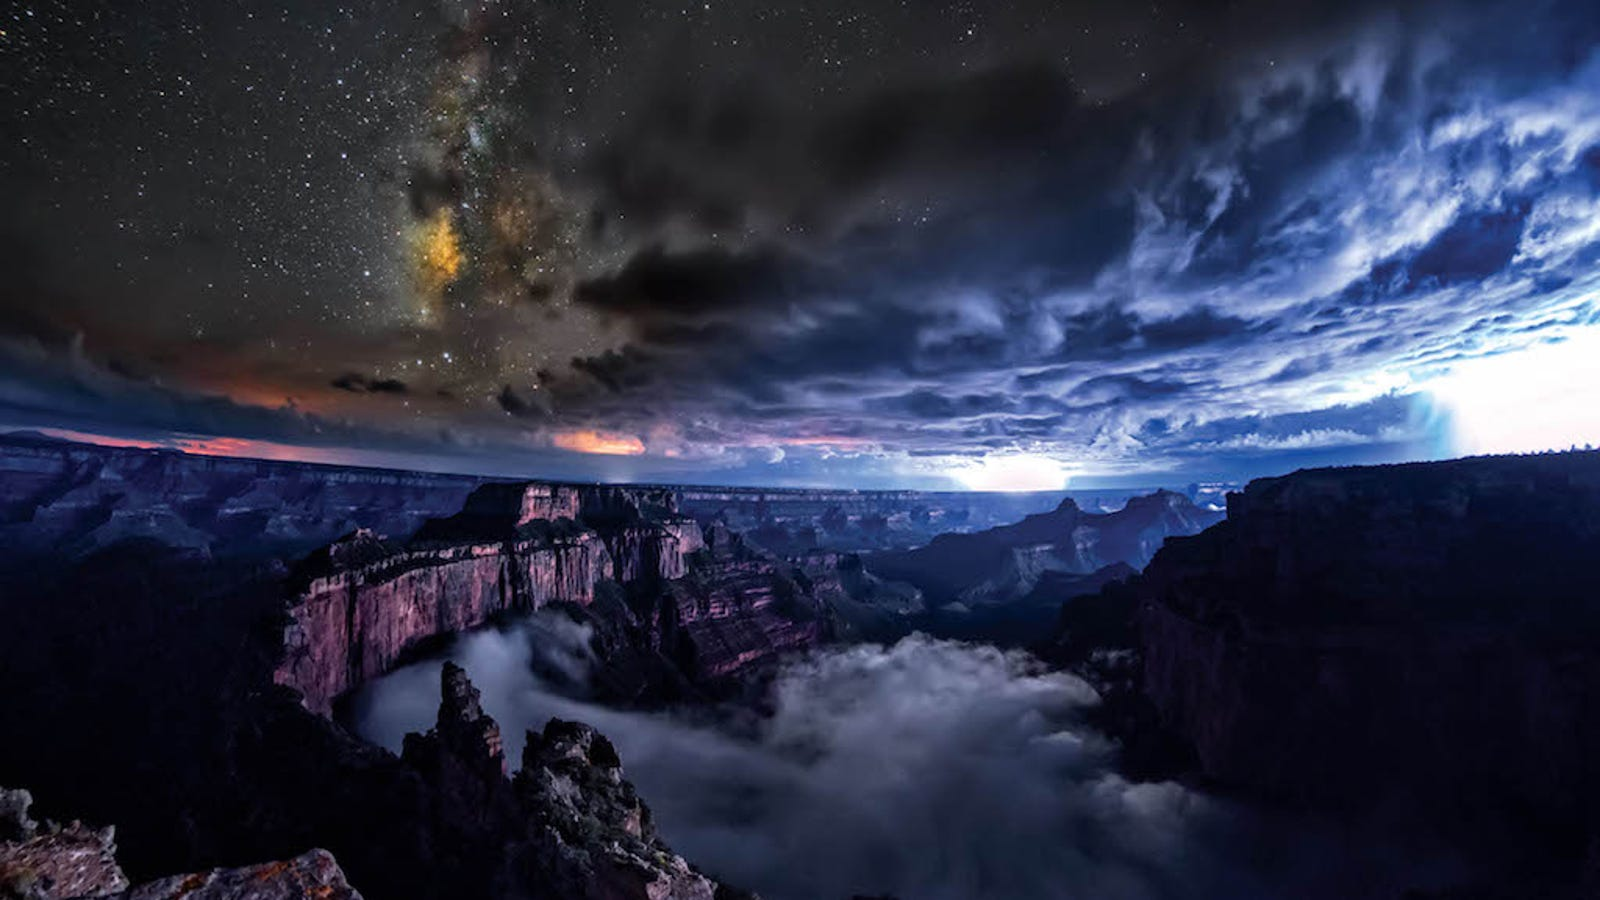 This Time Lapse Video of the Grand Canyon Will Give You an Existential Crisis